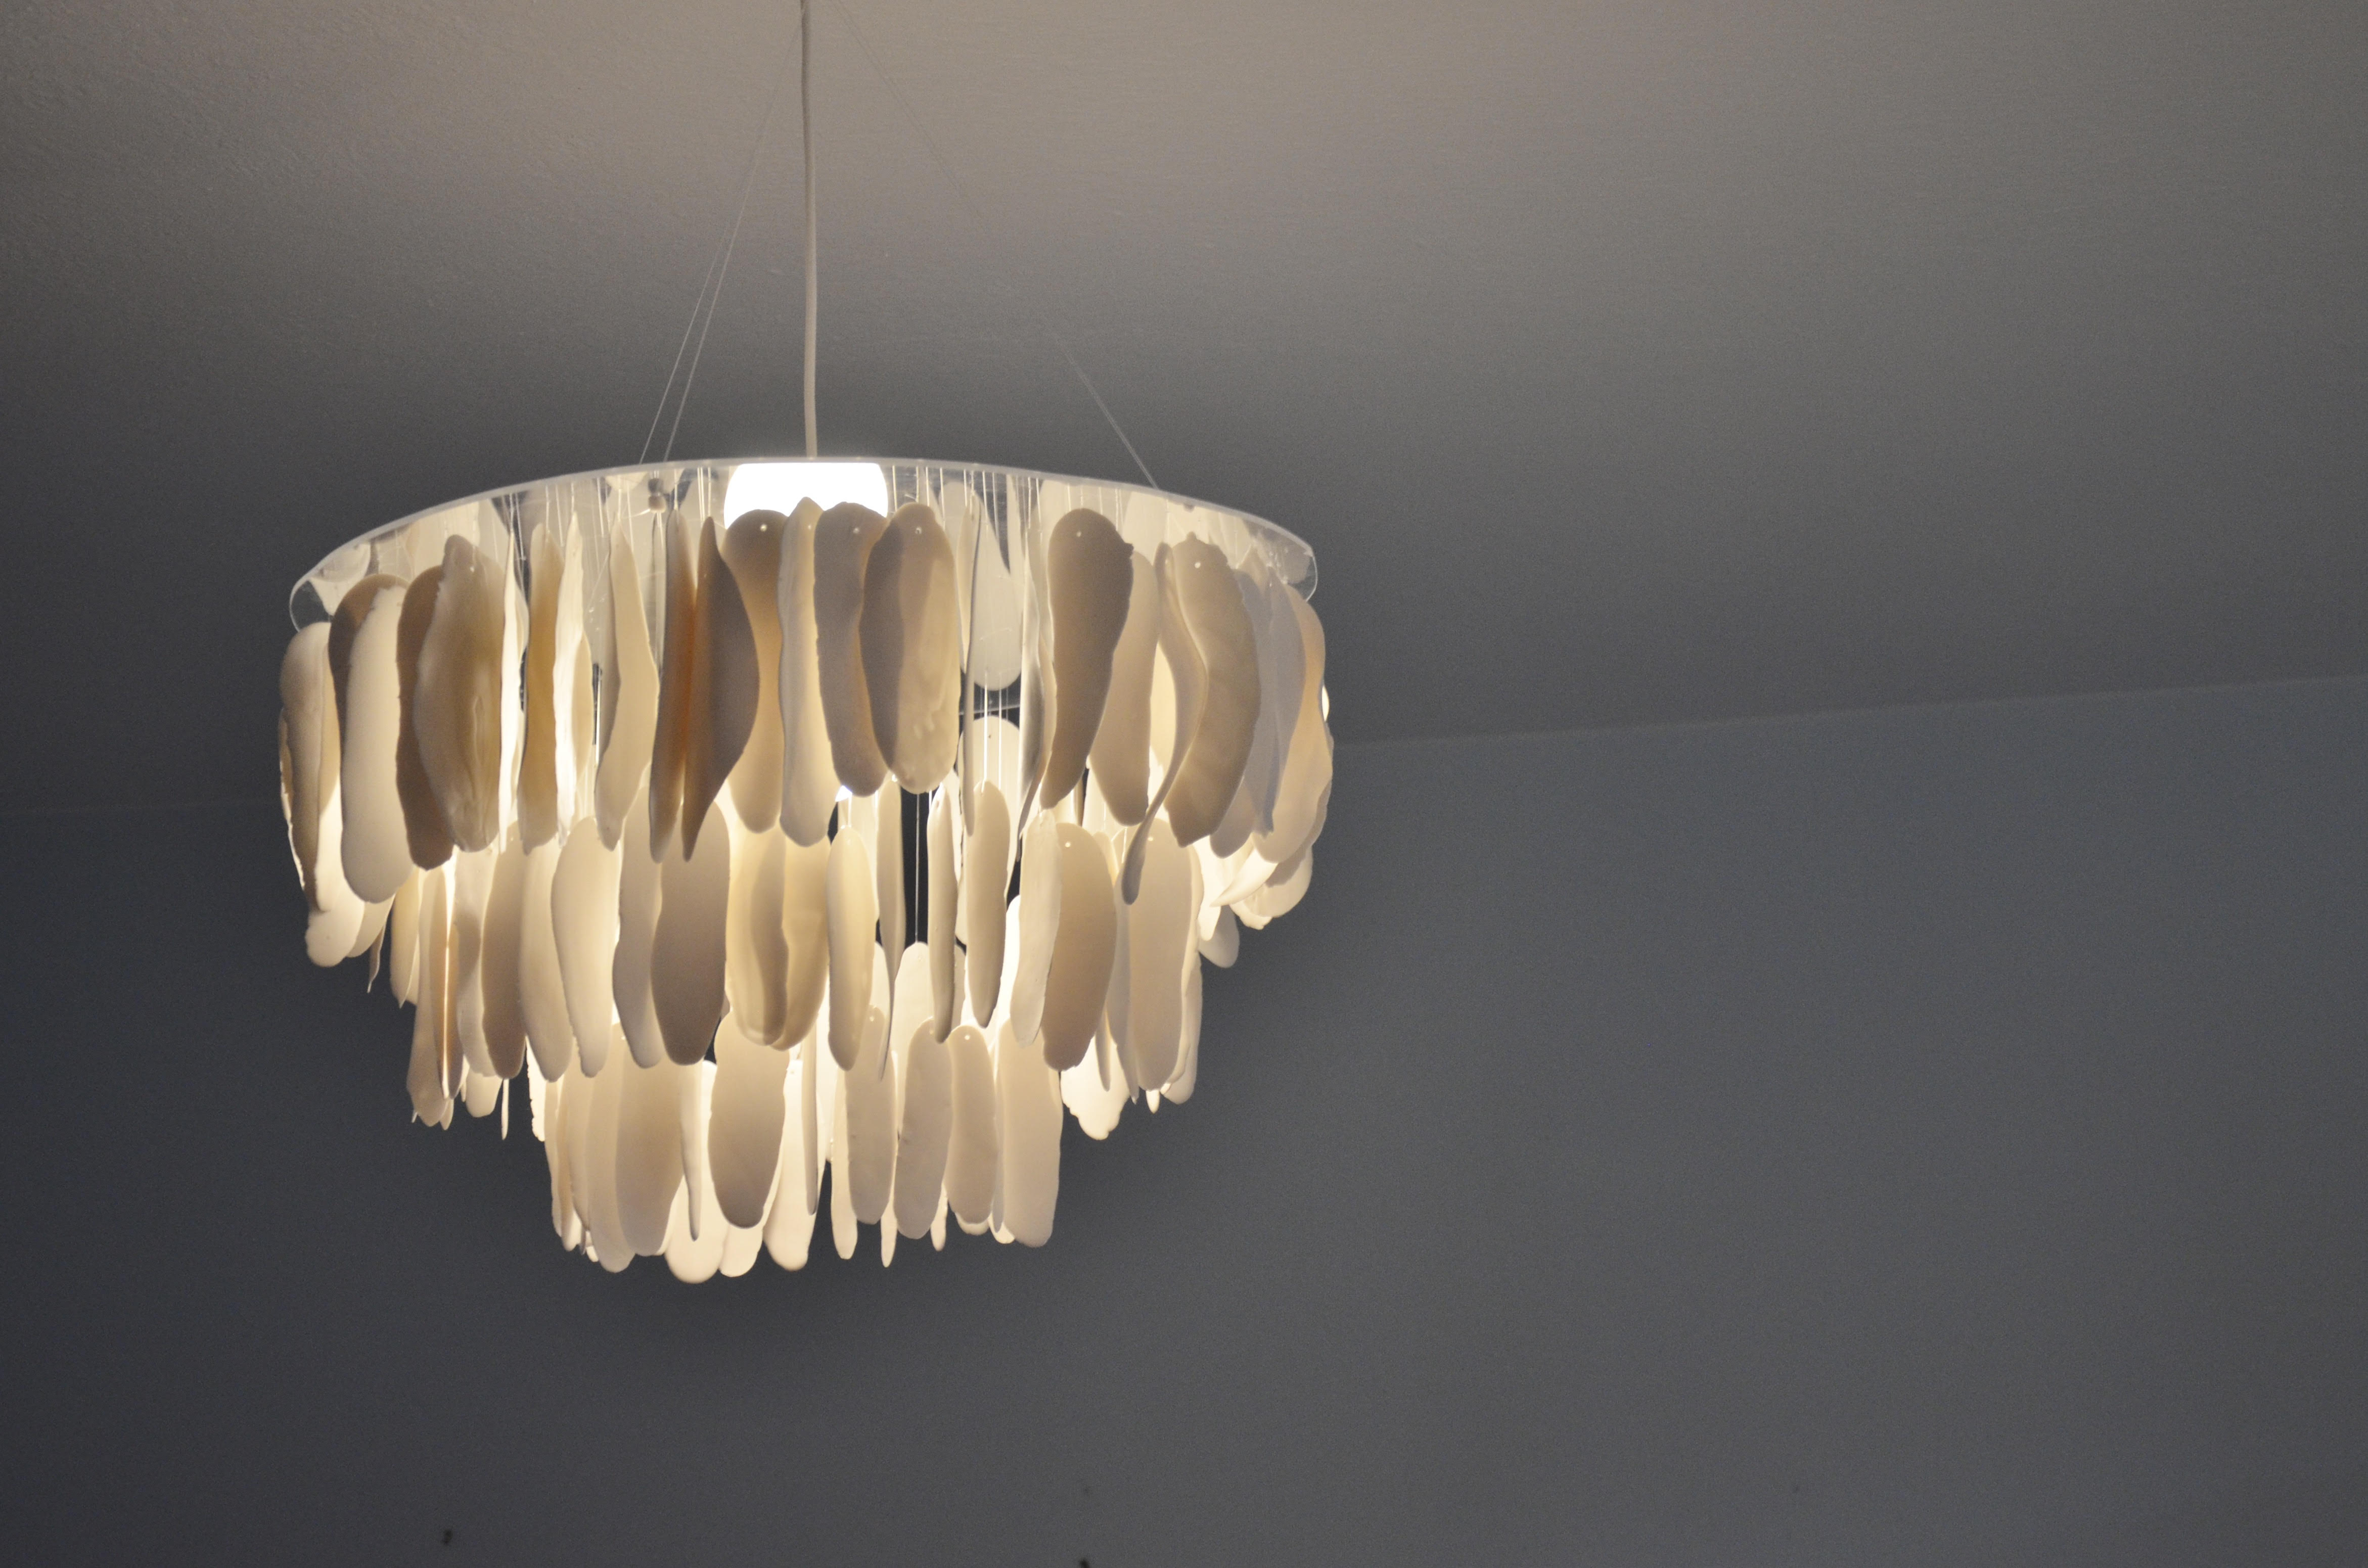 Chandelier made of tranclucent porcelain feathers